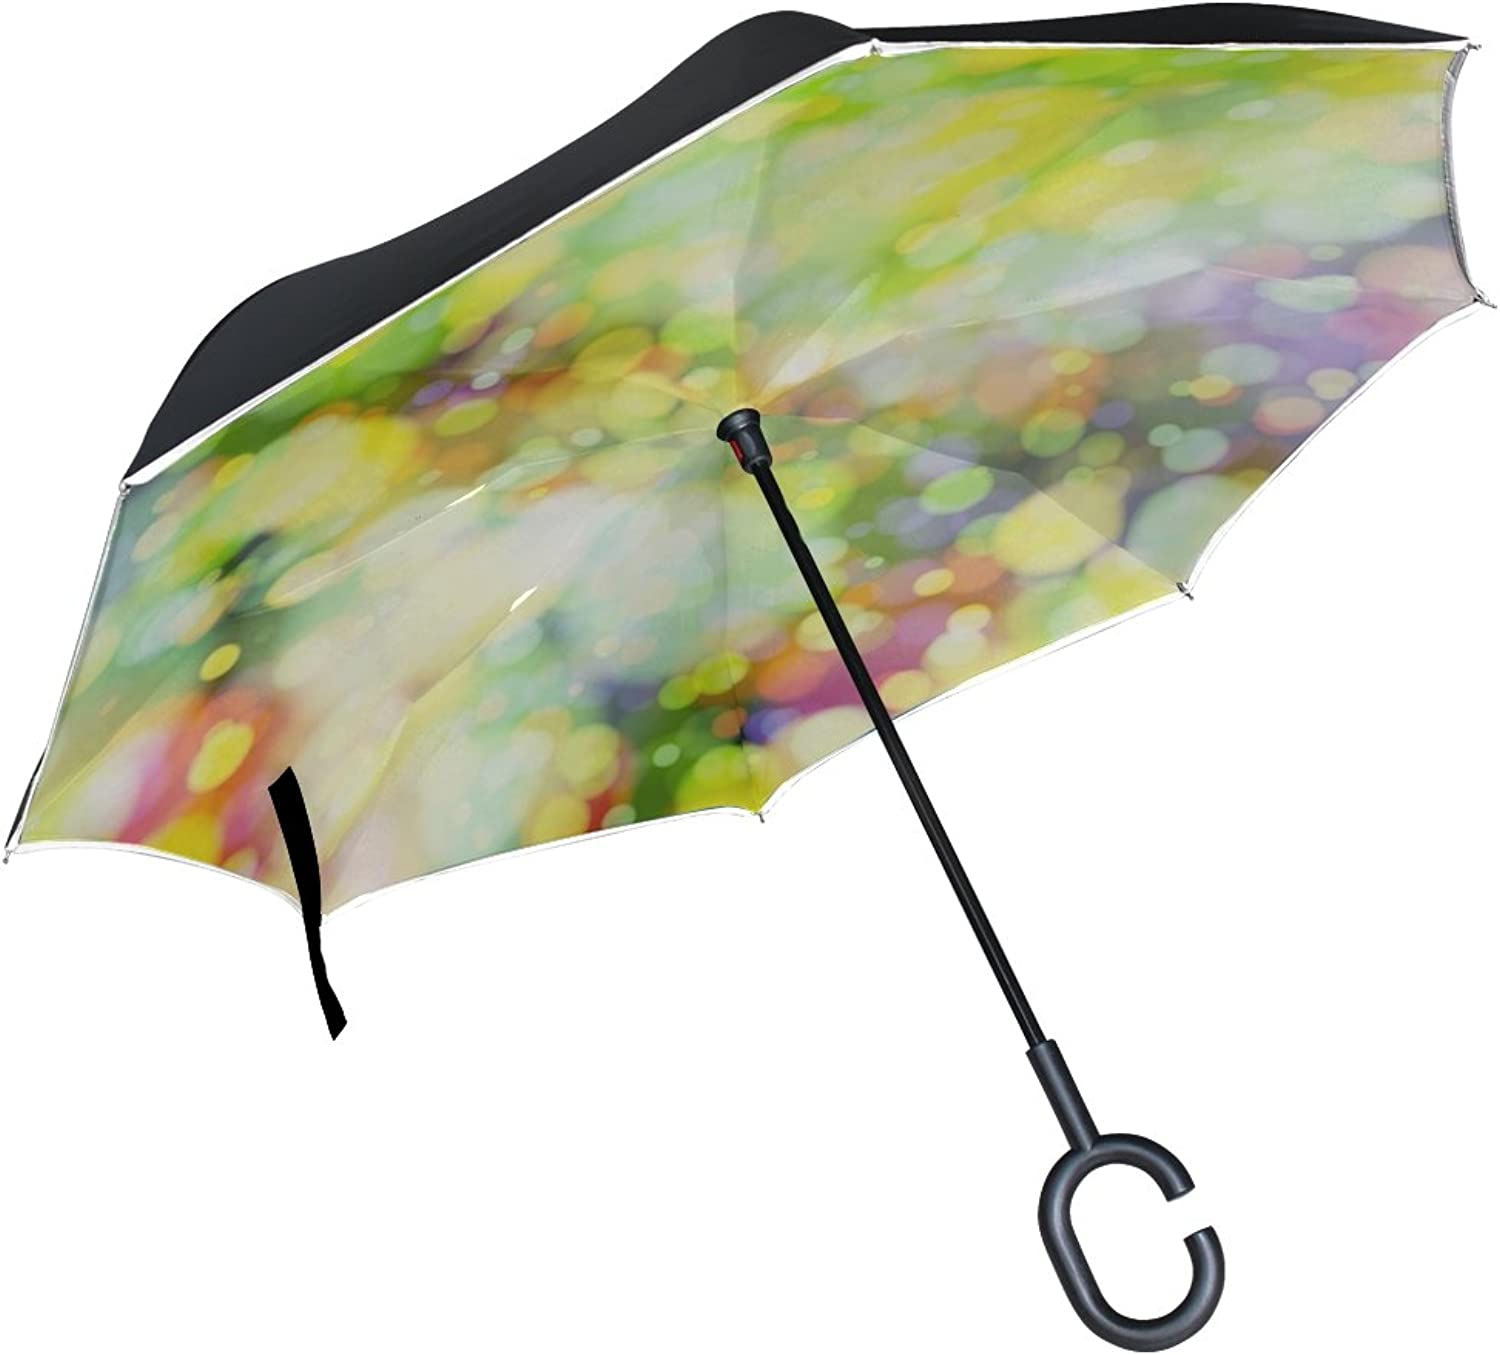 Double Layer Ingreened color Structure Lines Explosion Pop Umbrellas Reverse Folding Umbrella Windproof Uv Predection Big Straight Umbrella for Car Rain Outdoor with CShaped Handle